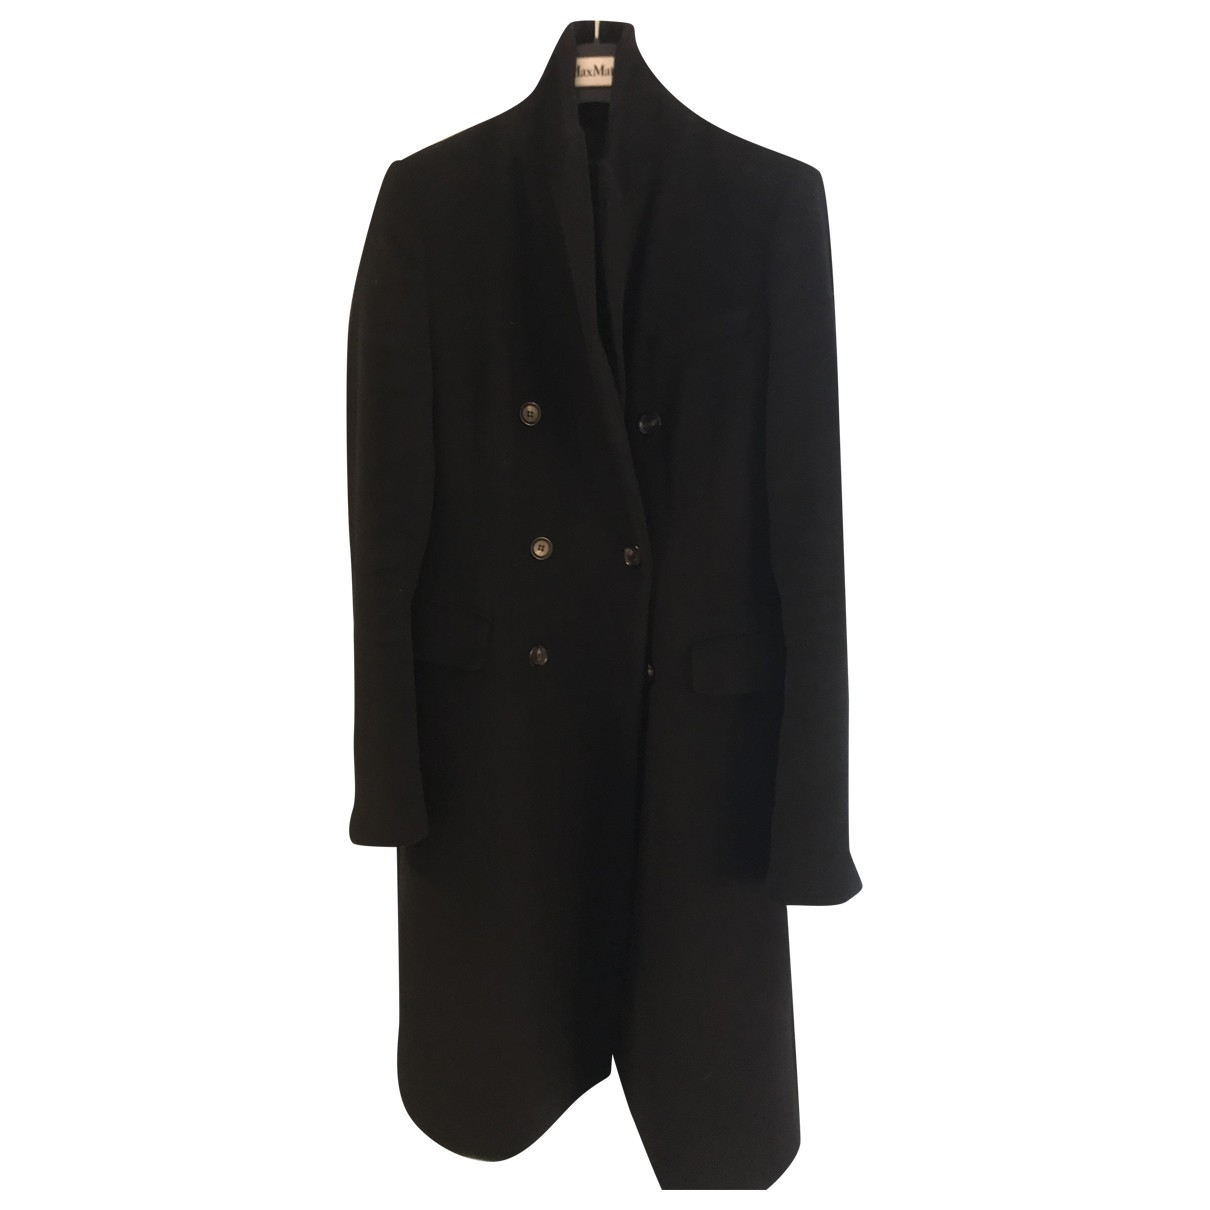 Zara \N Black Wool coat for Women M International